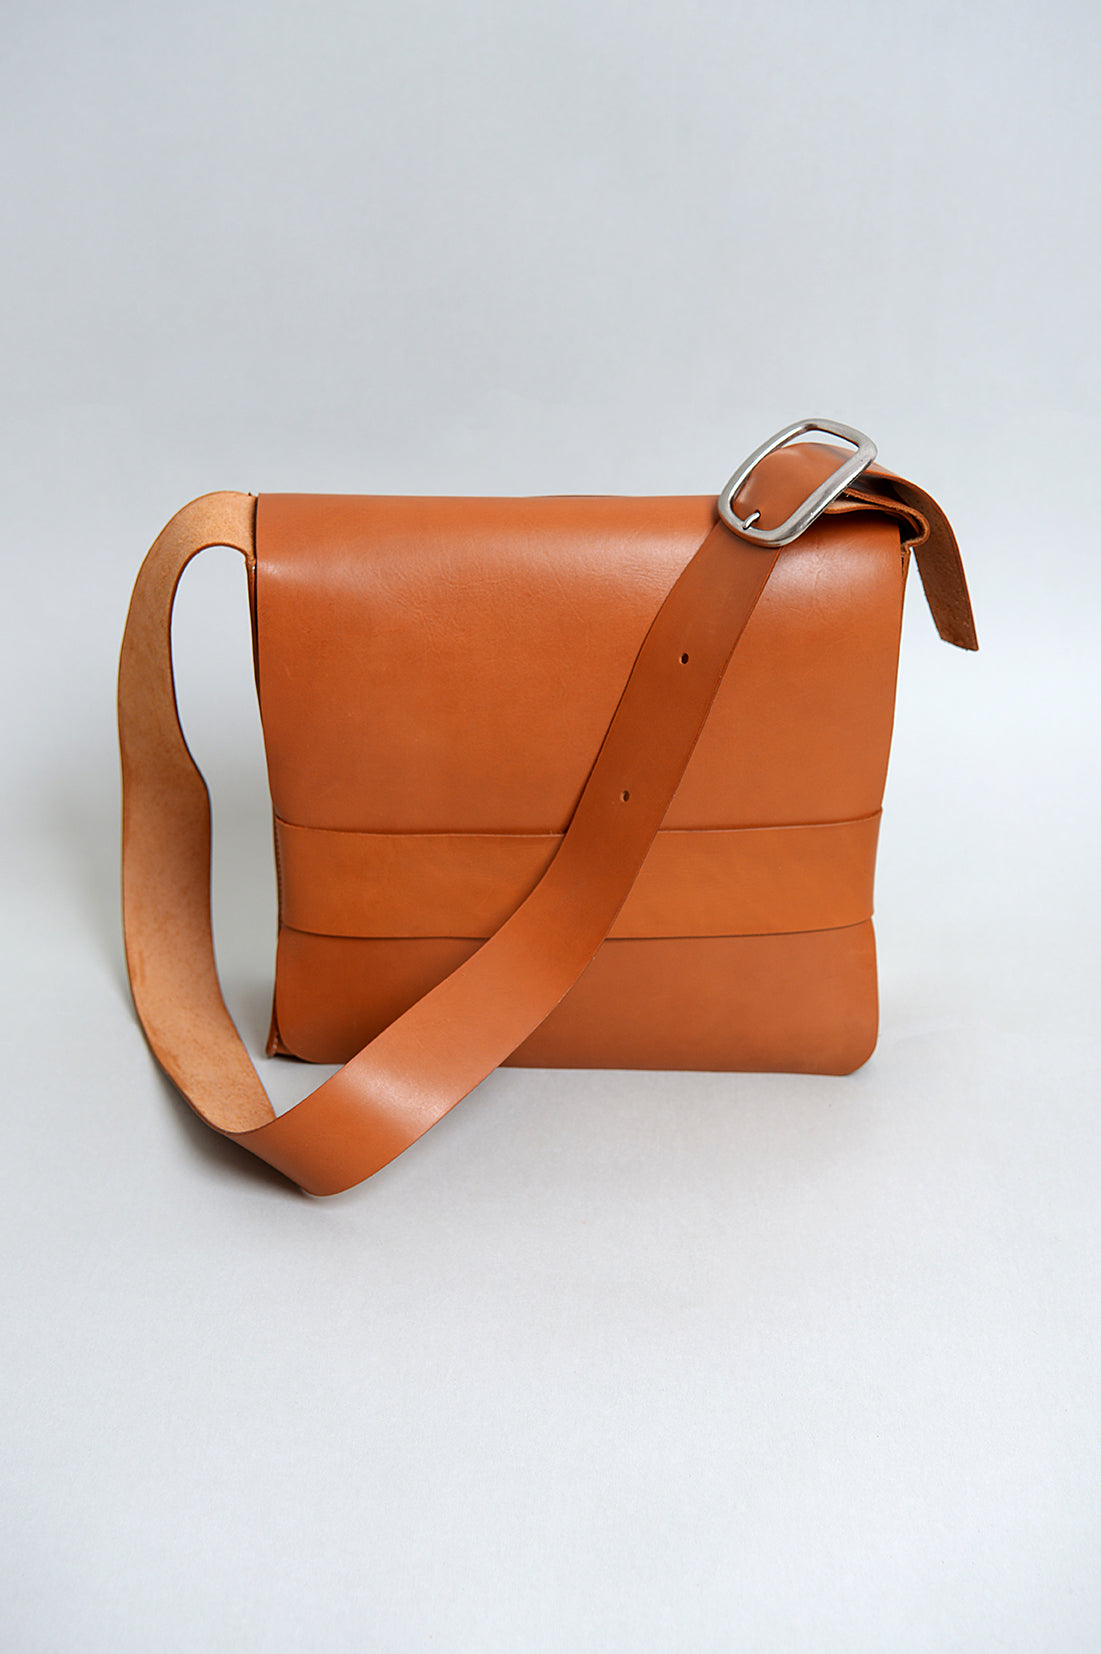 Handcrafted Tan Leather Retro Satchel